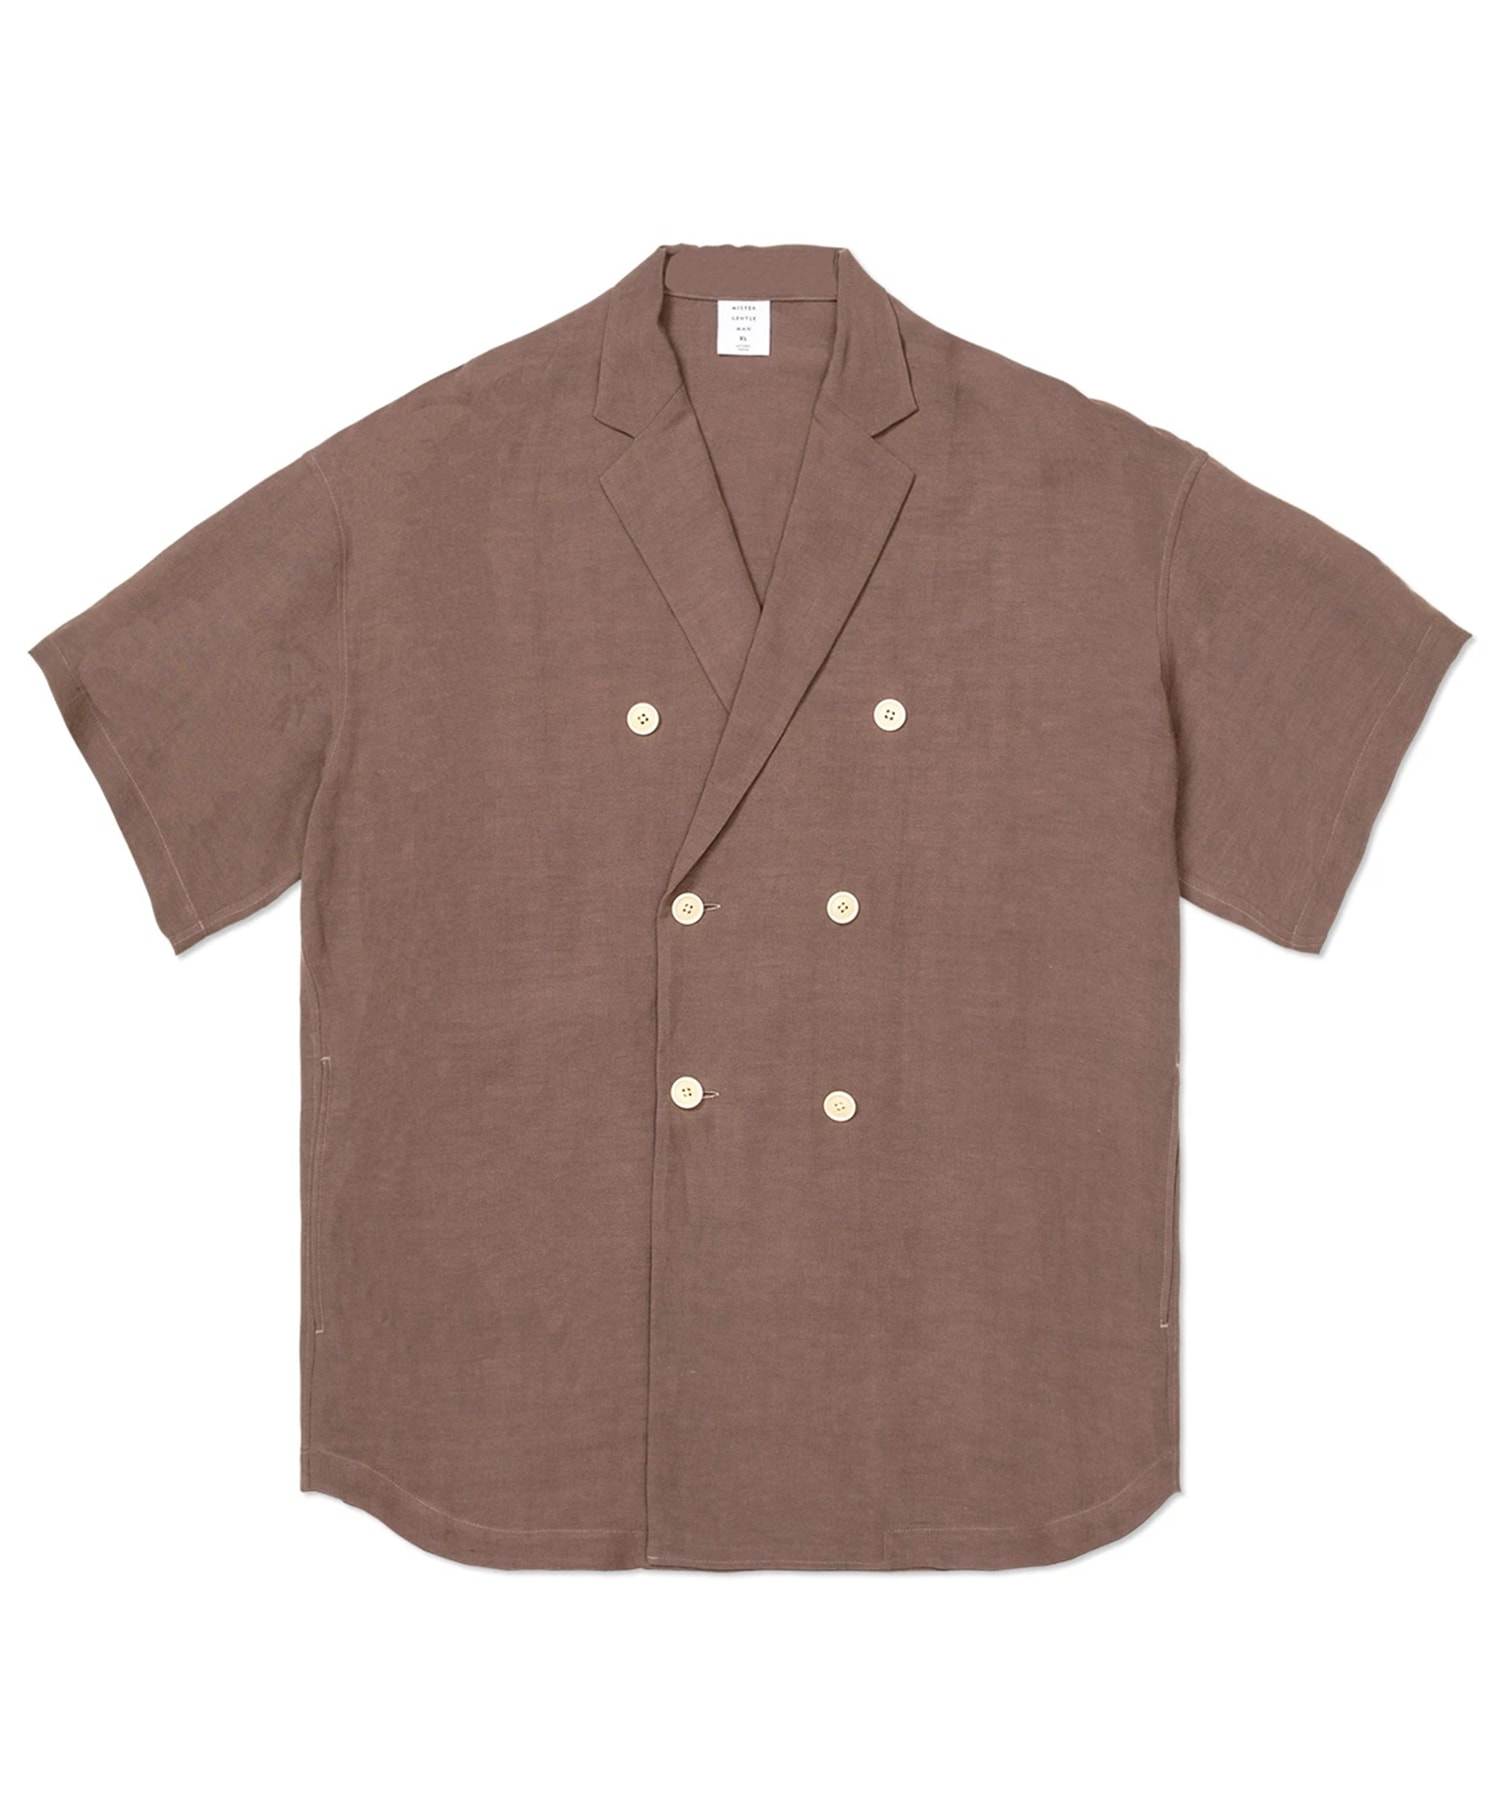 DOUBLE BREASTED S/S SHIRT